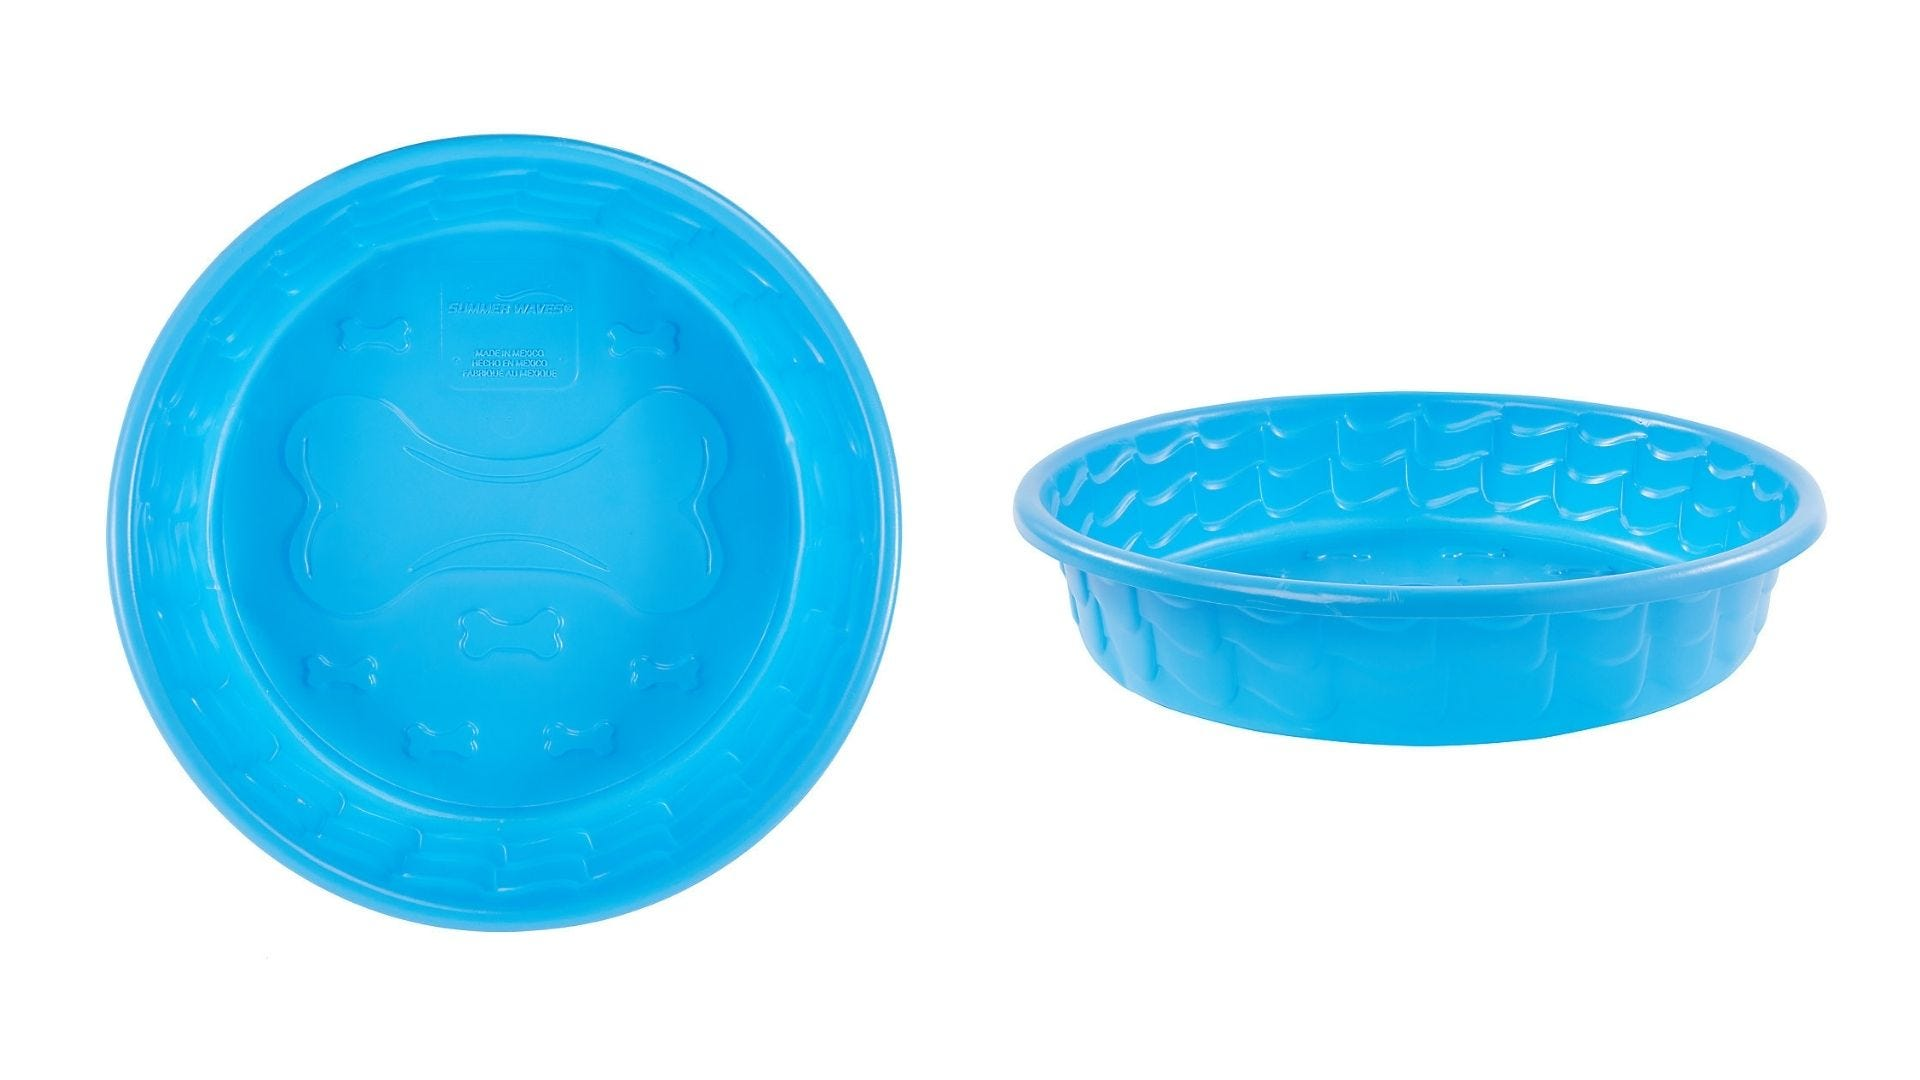 A small plastic dog pool top view and side view.